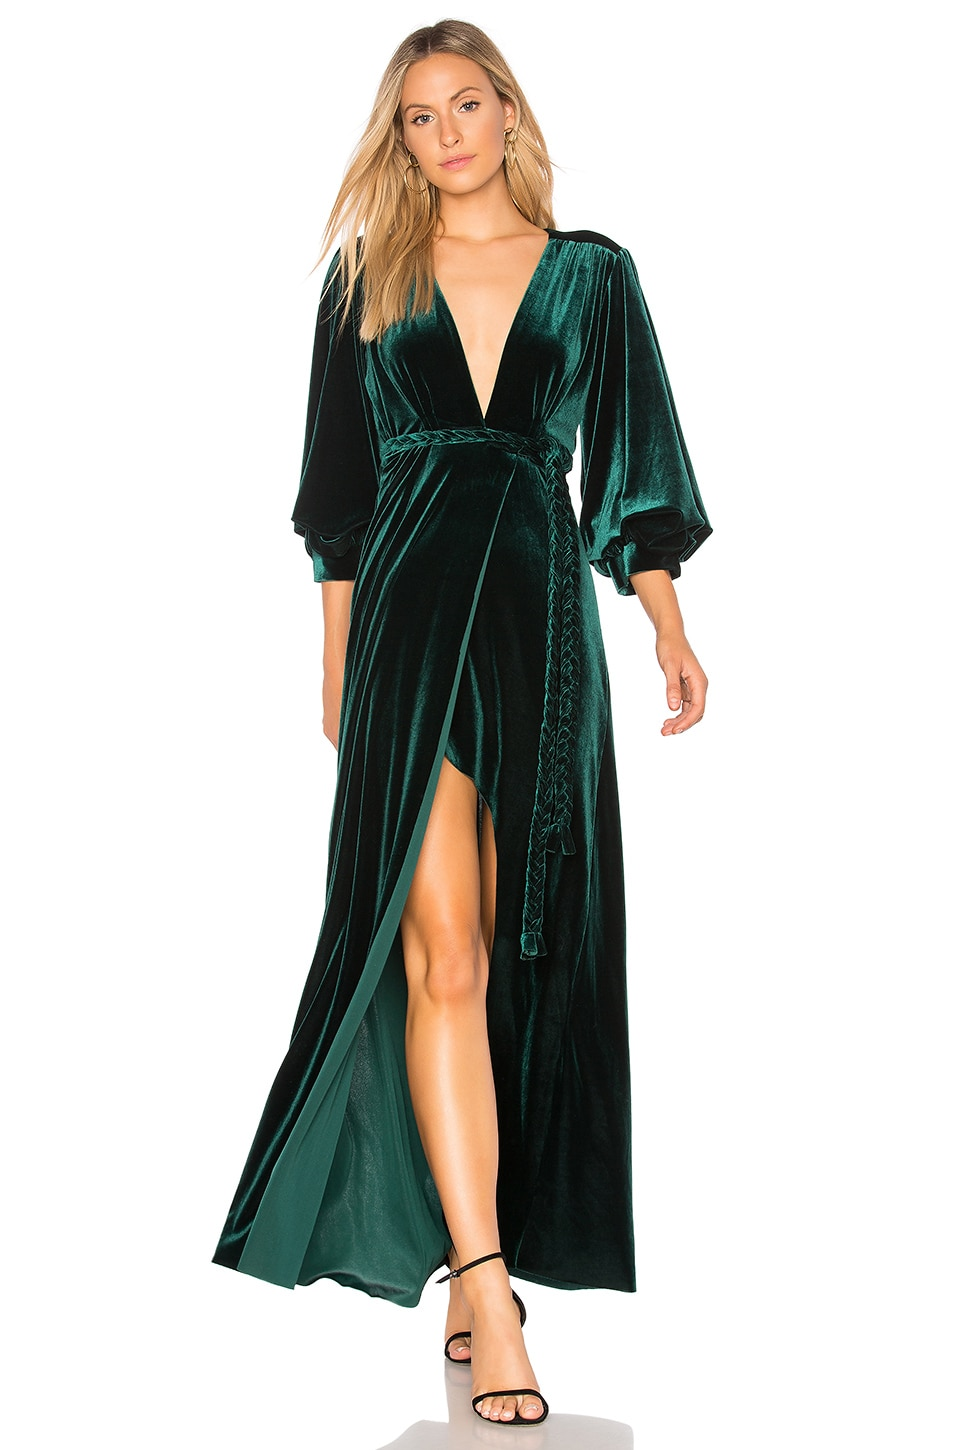 MISA Los Angeles Madeleine Dress in Green